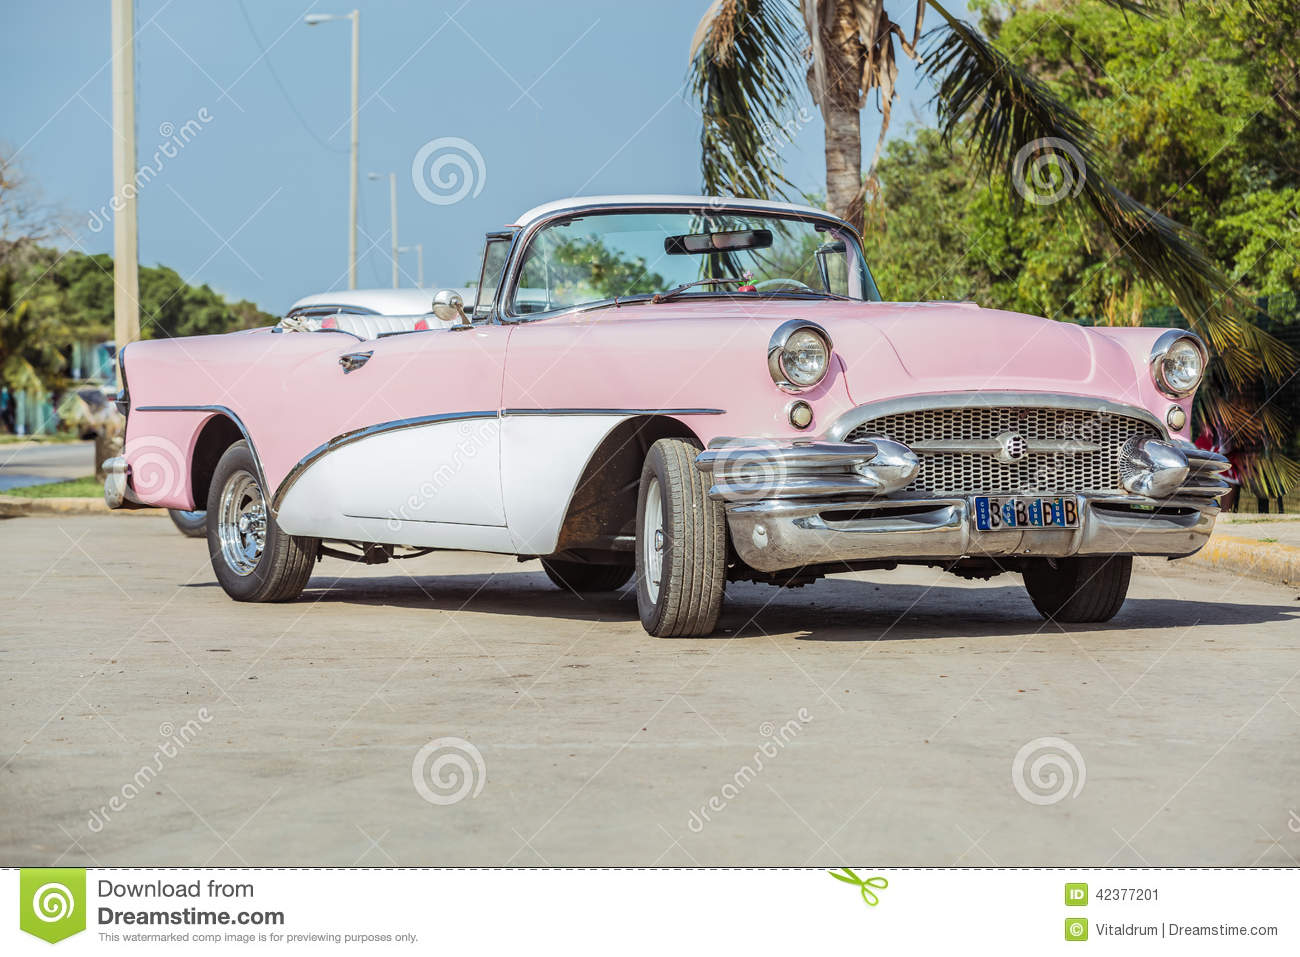 4 454 Vintage Pink Car Photos Free Royalty Free Stock Photos From Dreamstime